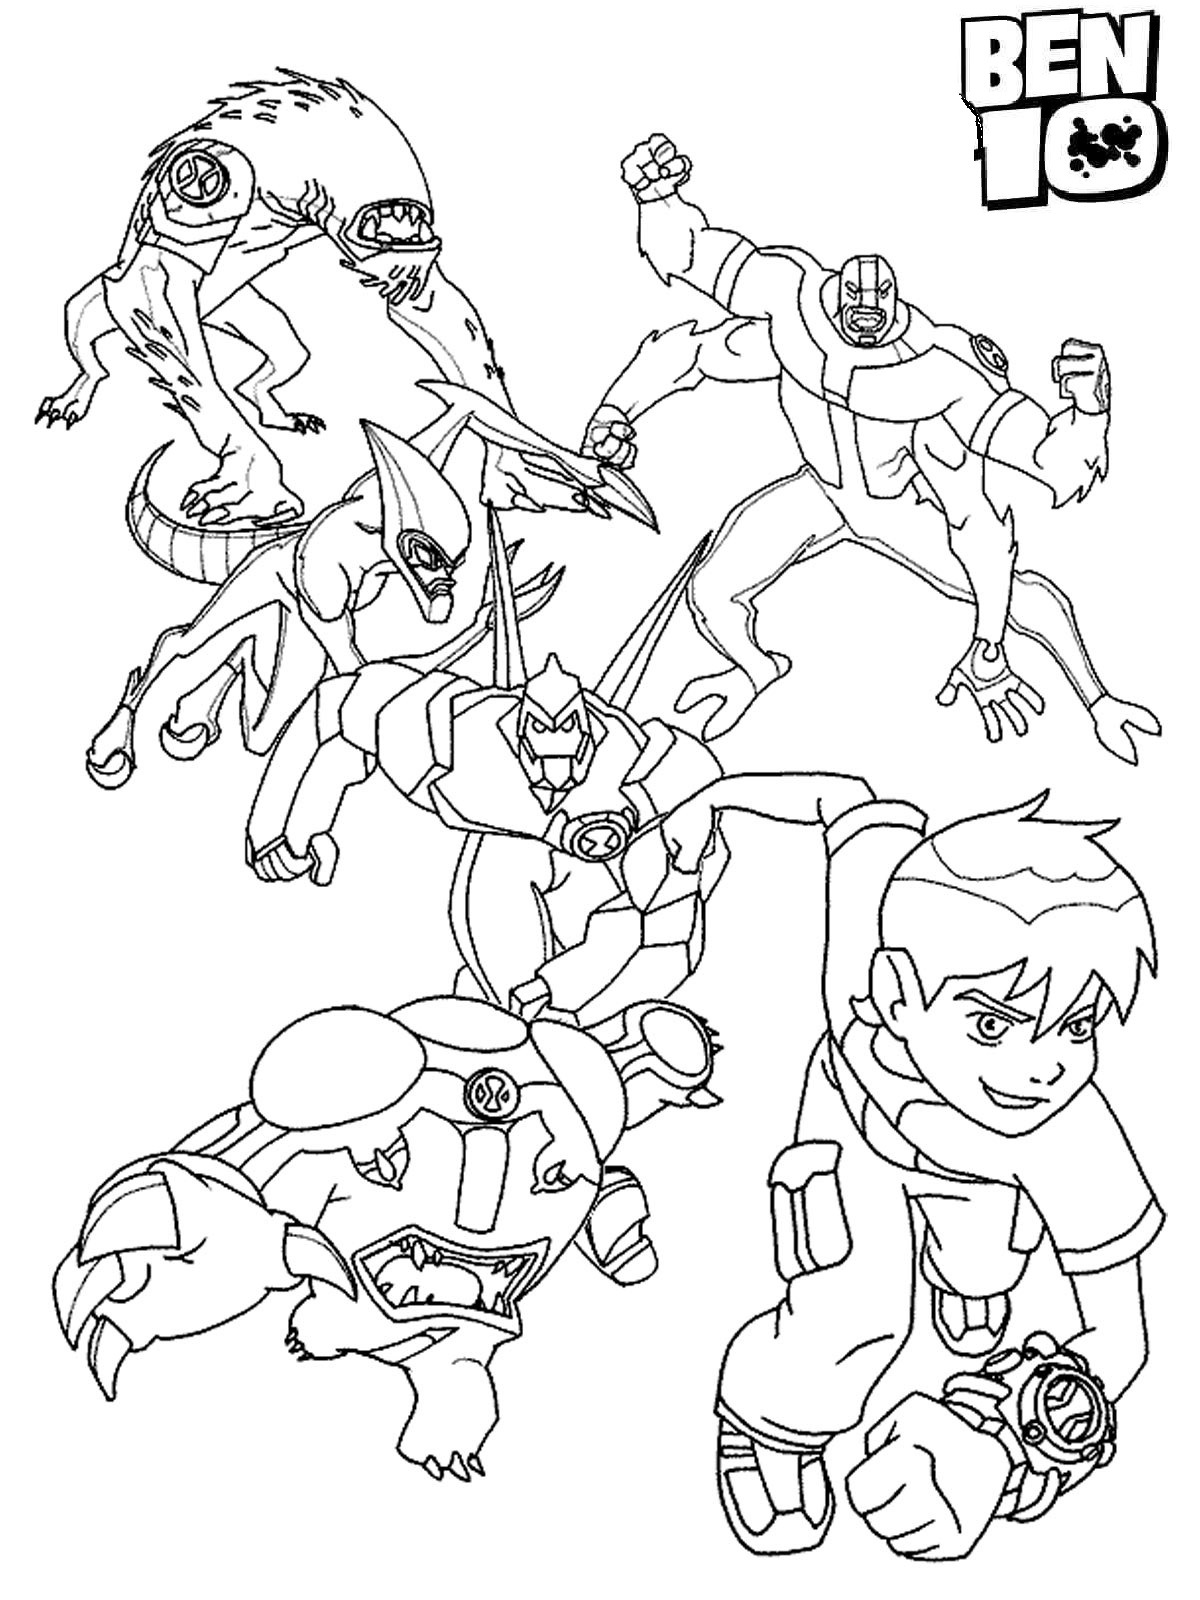 Free Ben 10 Coloring Pages